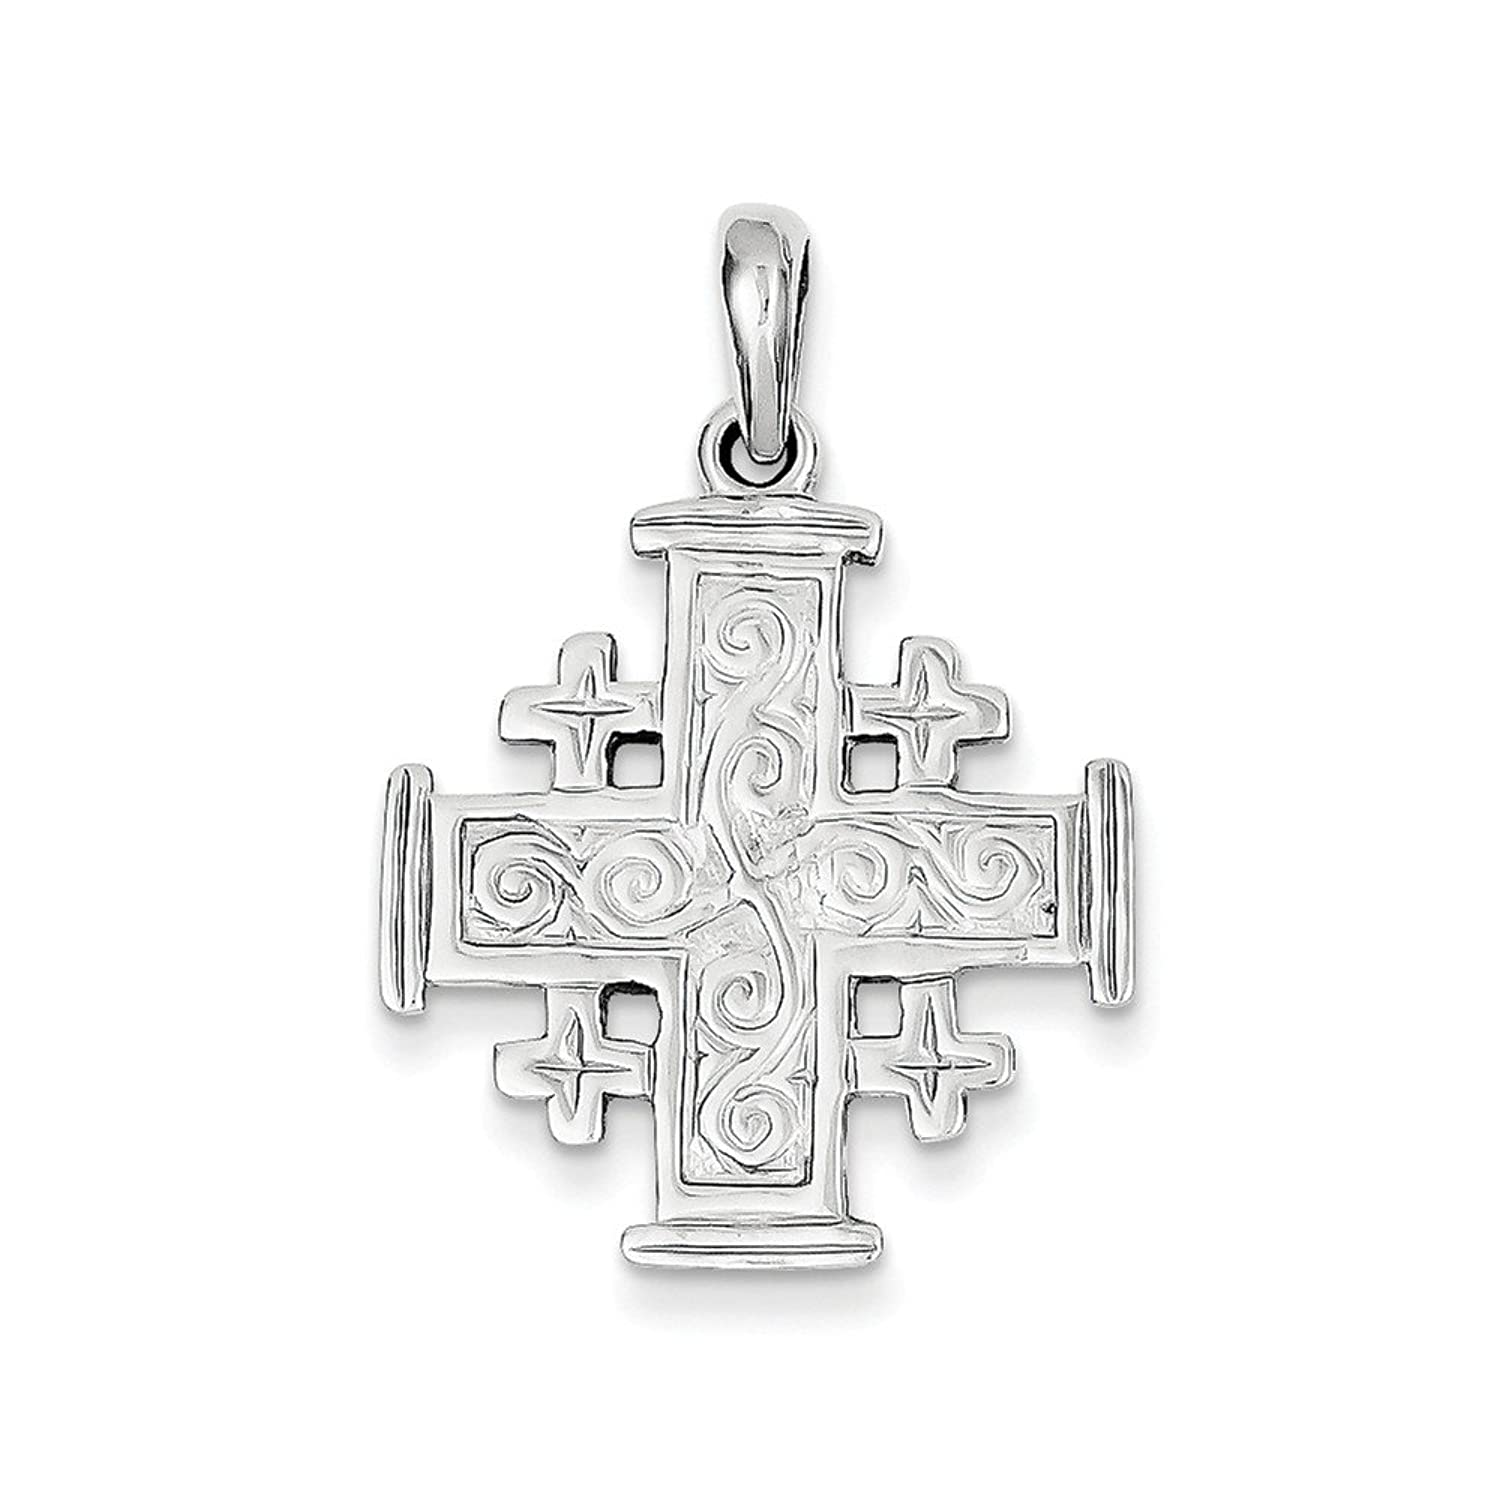 caprice diamonds bk pendant cross product jerusalem